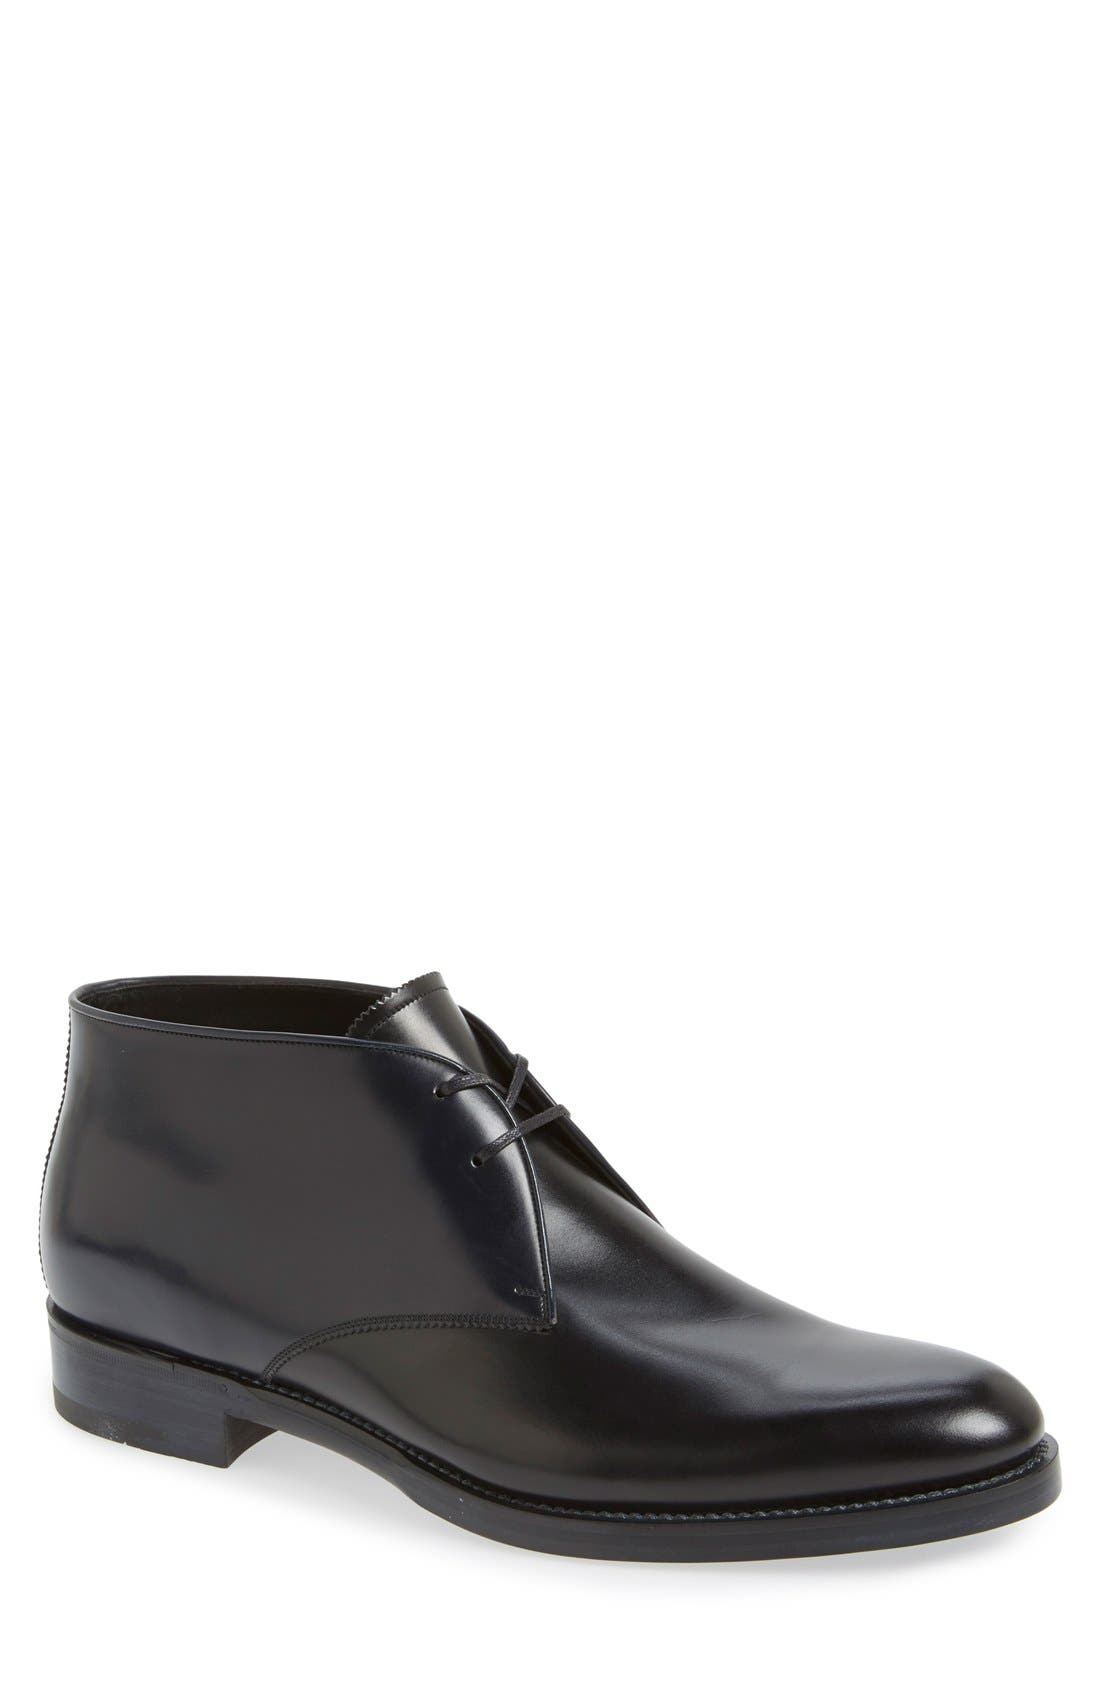 SALVATORE FERRAGAMO 'Georgetown' Chukka Boot, Main, color, 001